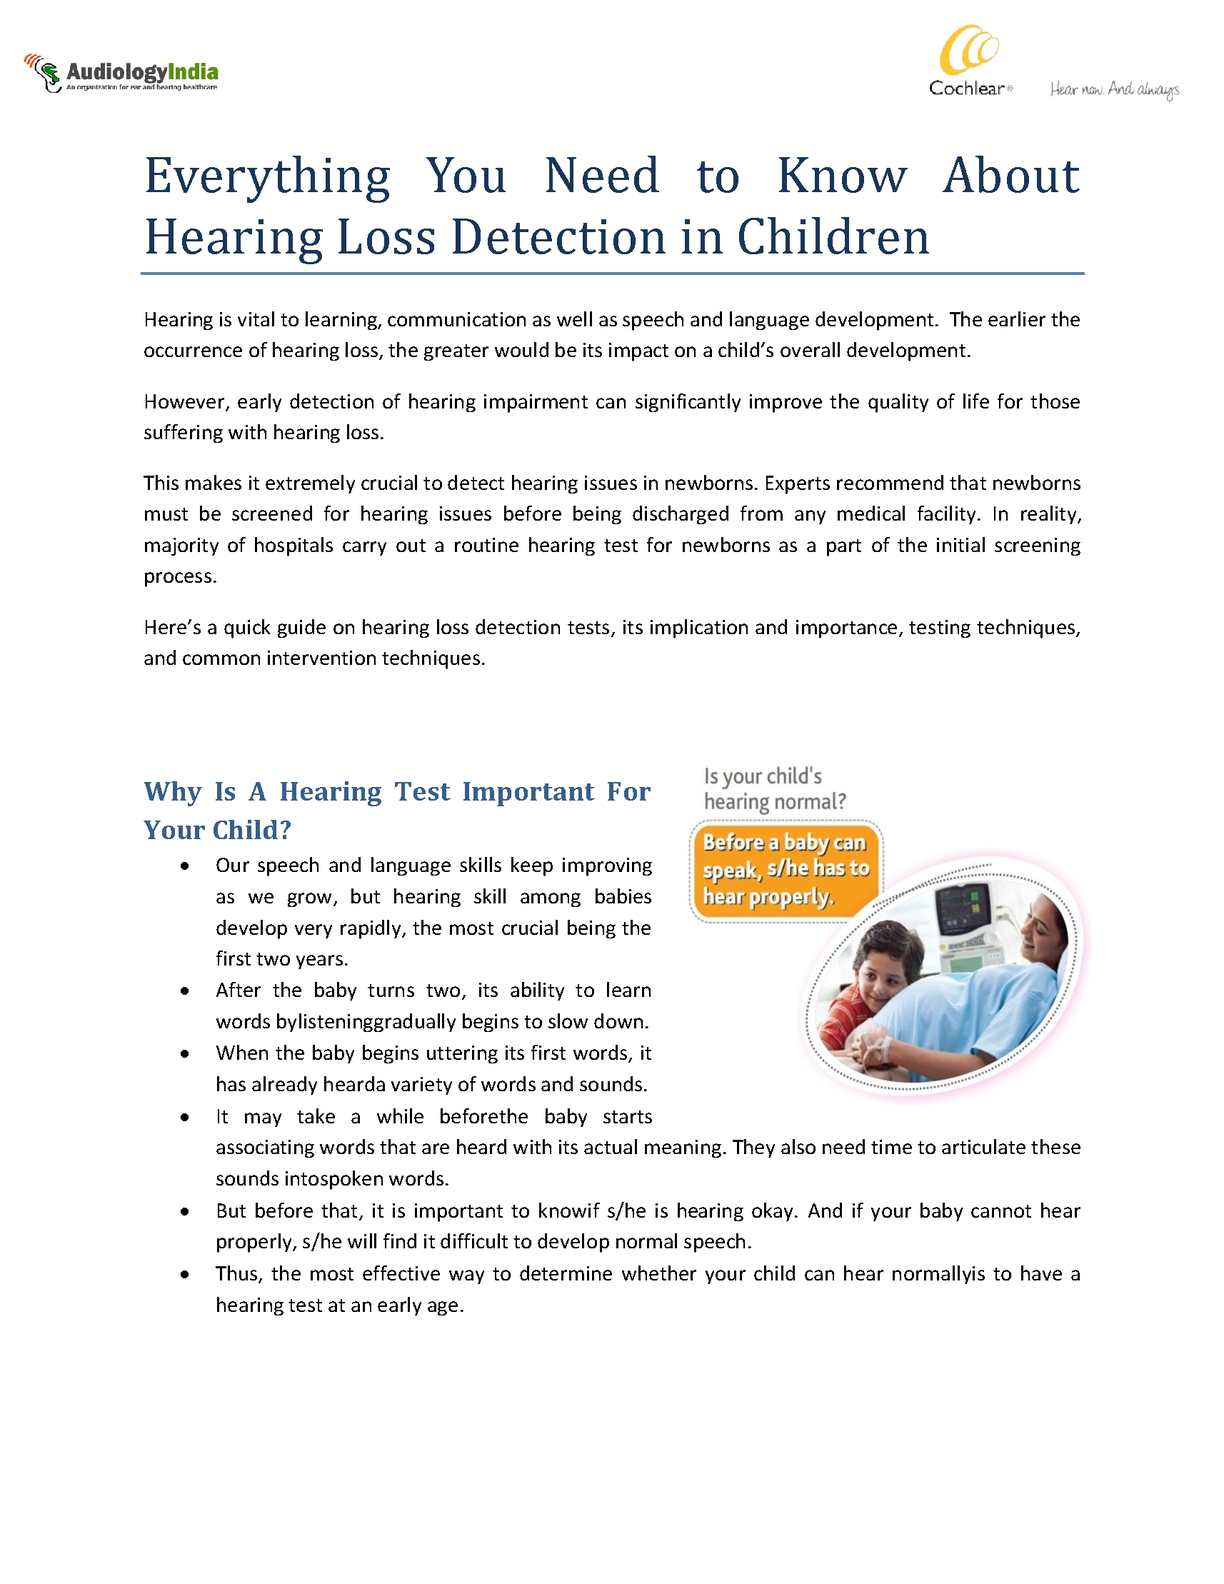 an overview of the hearing loss occurrence in children